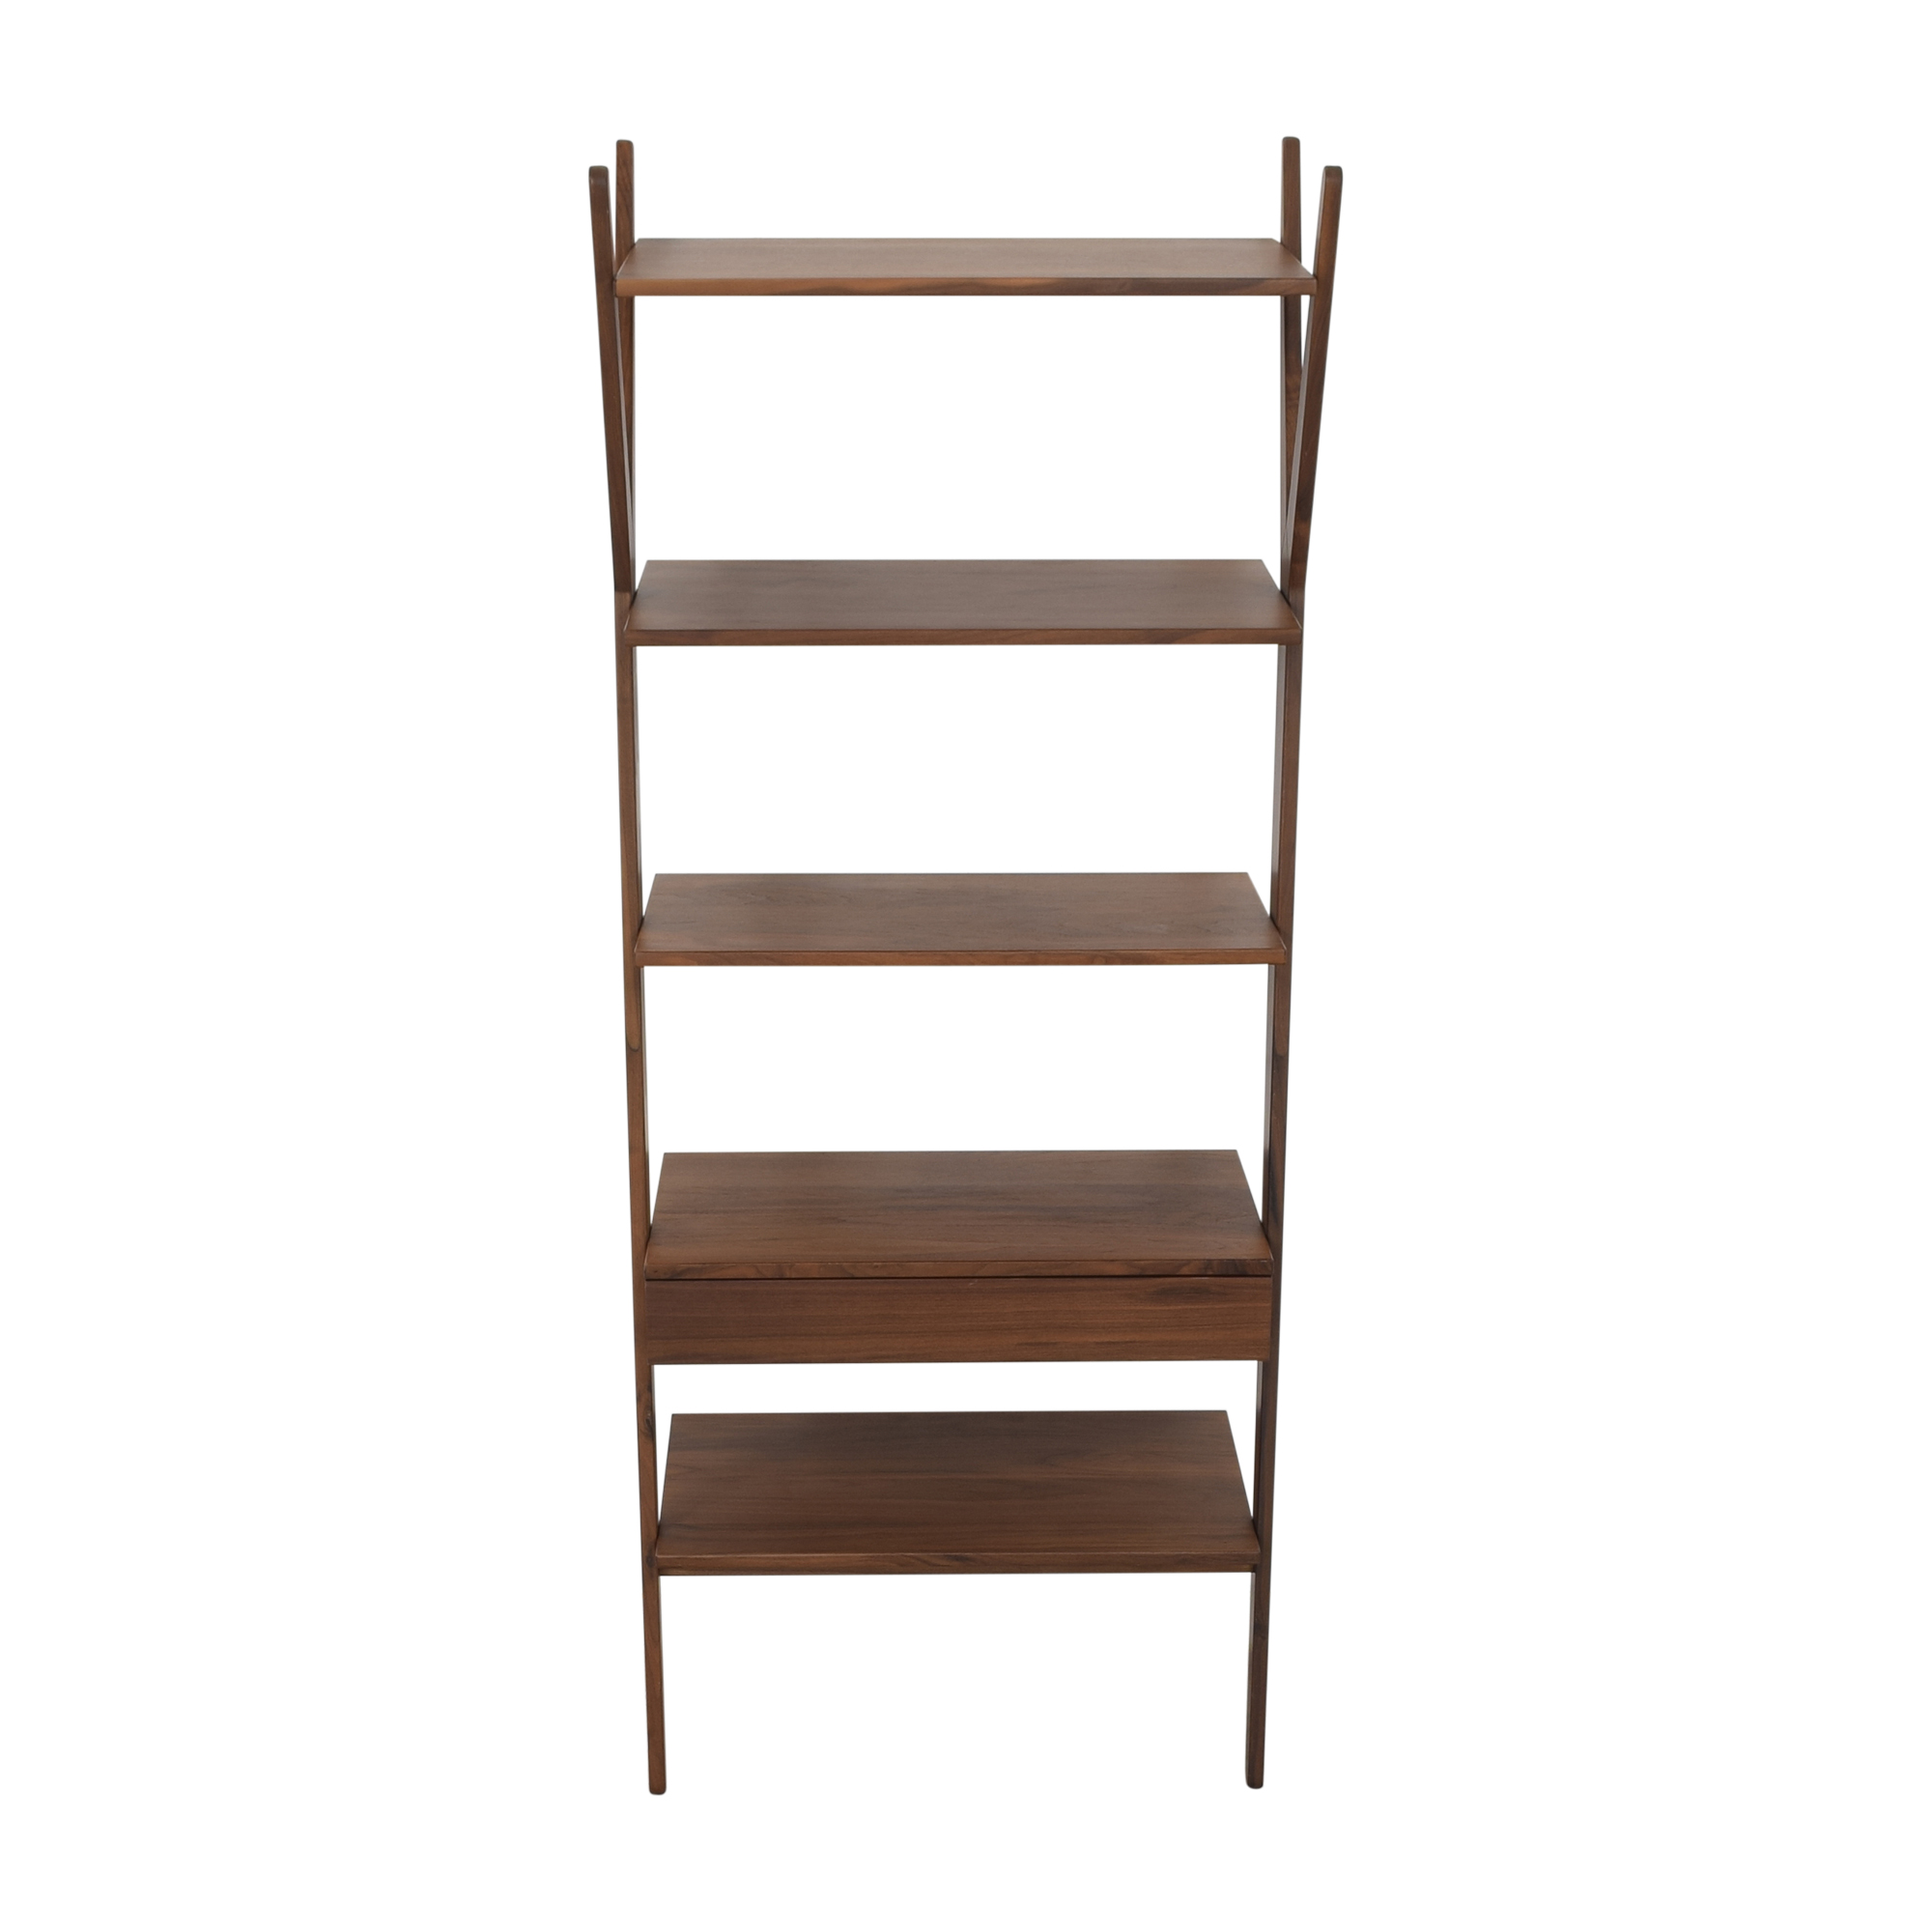 buy Article Article Lignum Walnut Bookshelf online